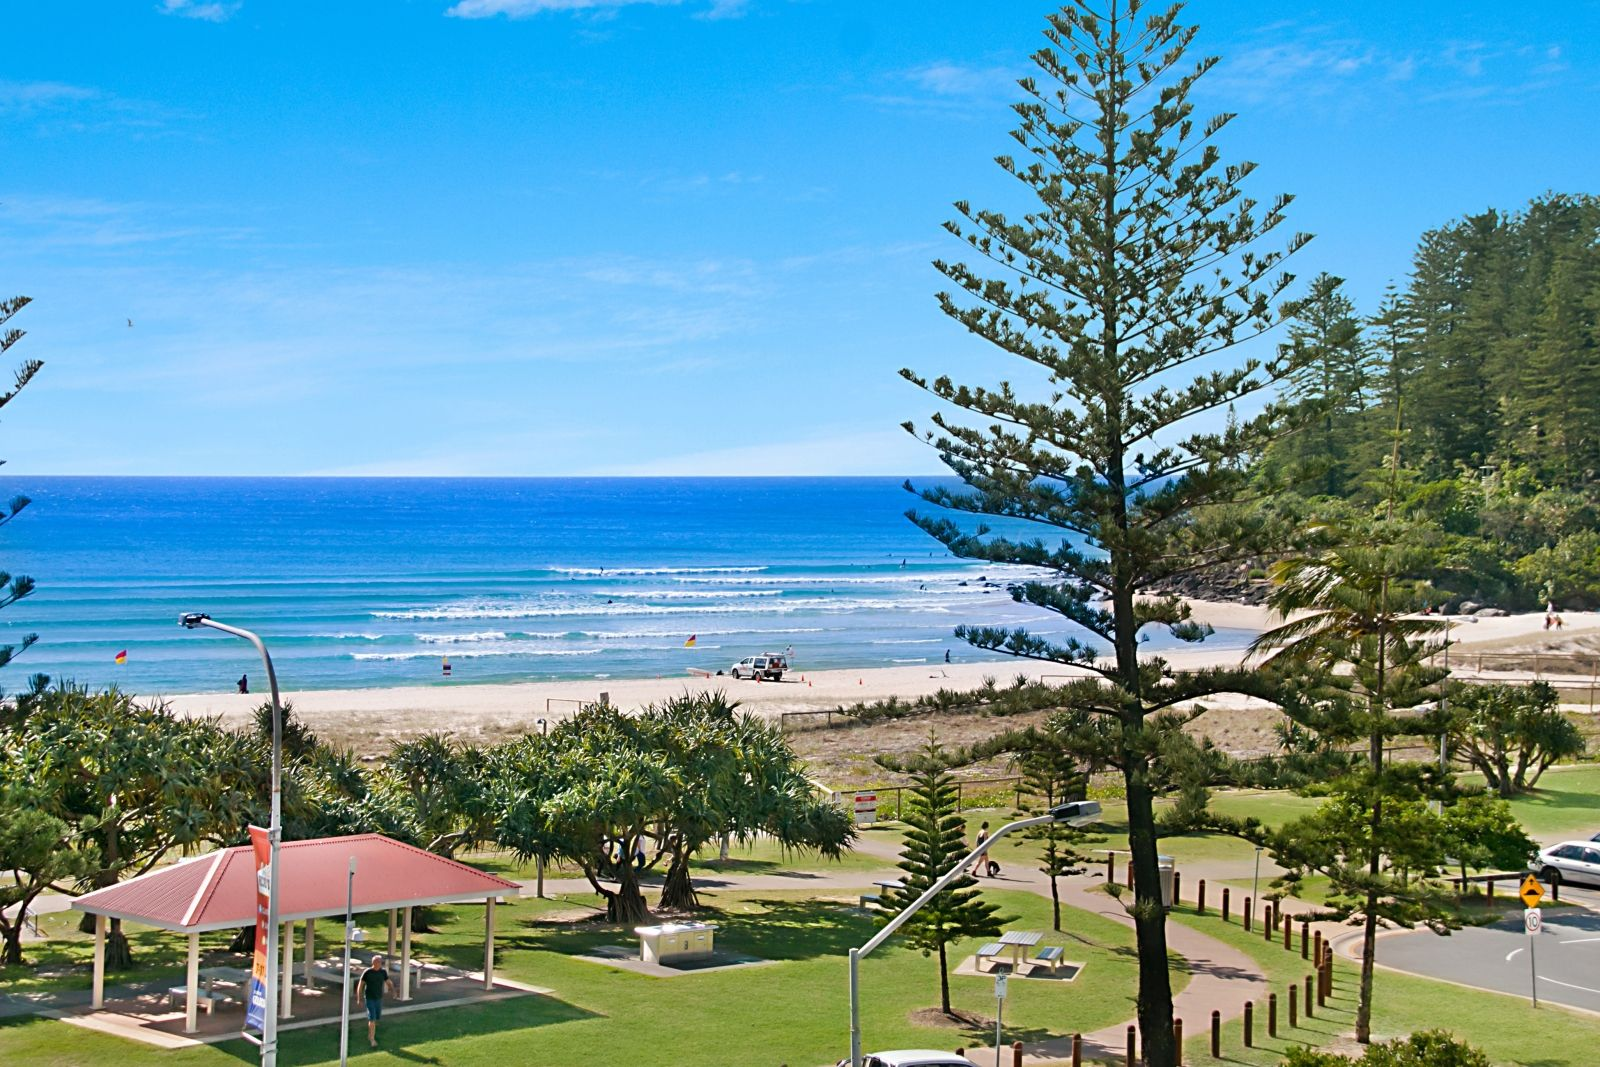 456/99 Griffith Street, Coolangatta QLD 4225, Image 0